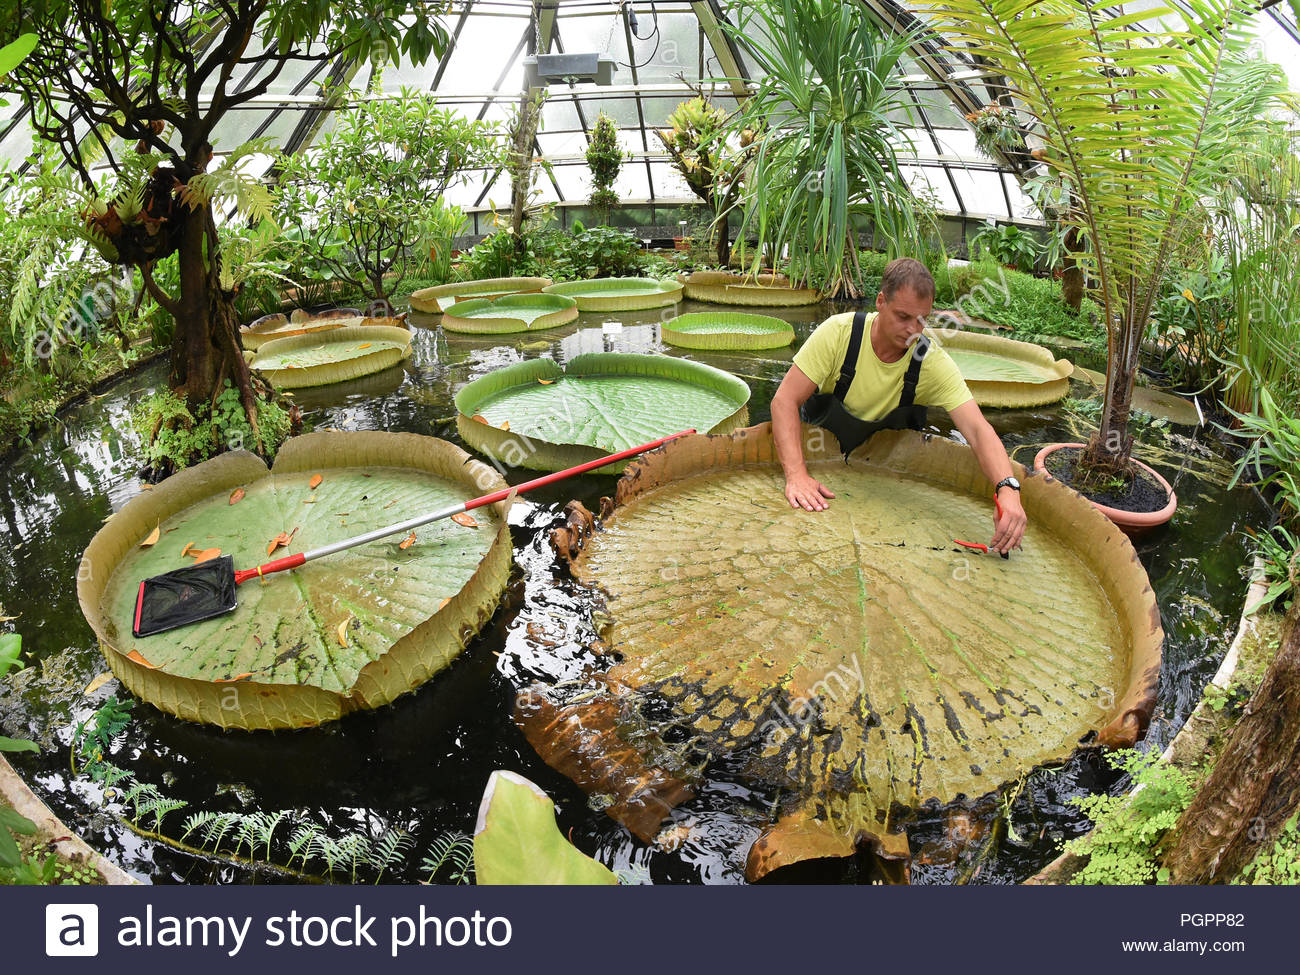 24 august 2018 germany hallesaale in the victoriahaus of the botanical garden of the martin luther university hallewittenberg district gardener matthias pabst stands in the water basin to clean out the withered leaves of the giant water lily victoria which can reach a size of up to 150 metres once a week during the summer months the yellowed leaves are divided into four pieces of cake because of their weight and brought to post the white flowers of the queen of the water lilies named after queen victoria 1819 1901 of england only open in the evening and at night photo PGPP82